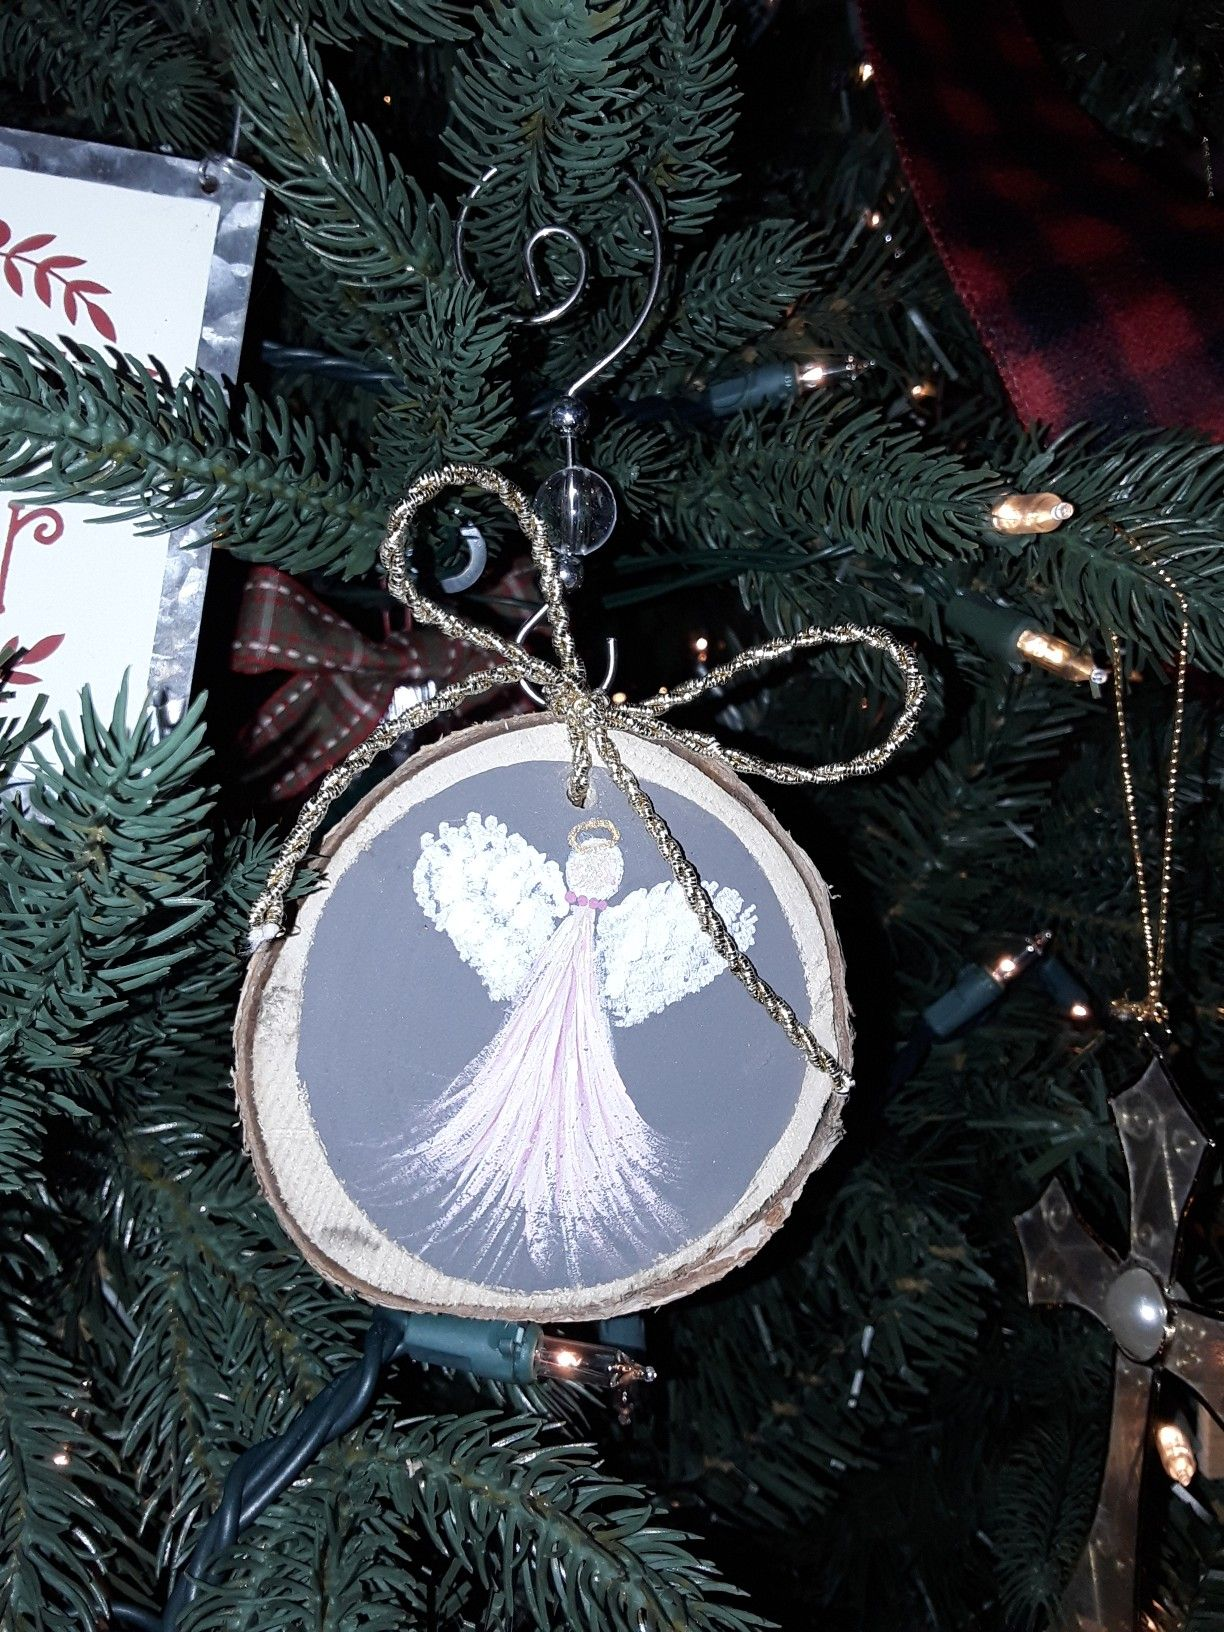 Hand Painted Birch Wood Slice Angel Ornaments Visit Us At Www Facebook Com Southe Christmas Art Projects Christmas Crafts Decorations Wood Christmas Ornaments